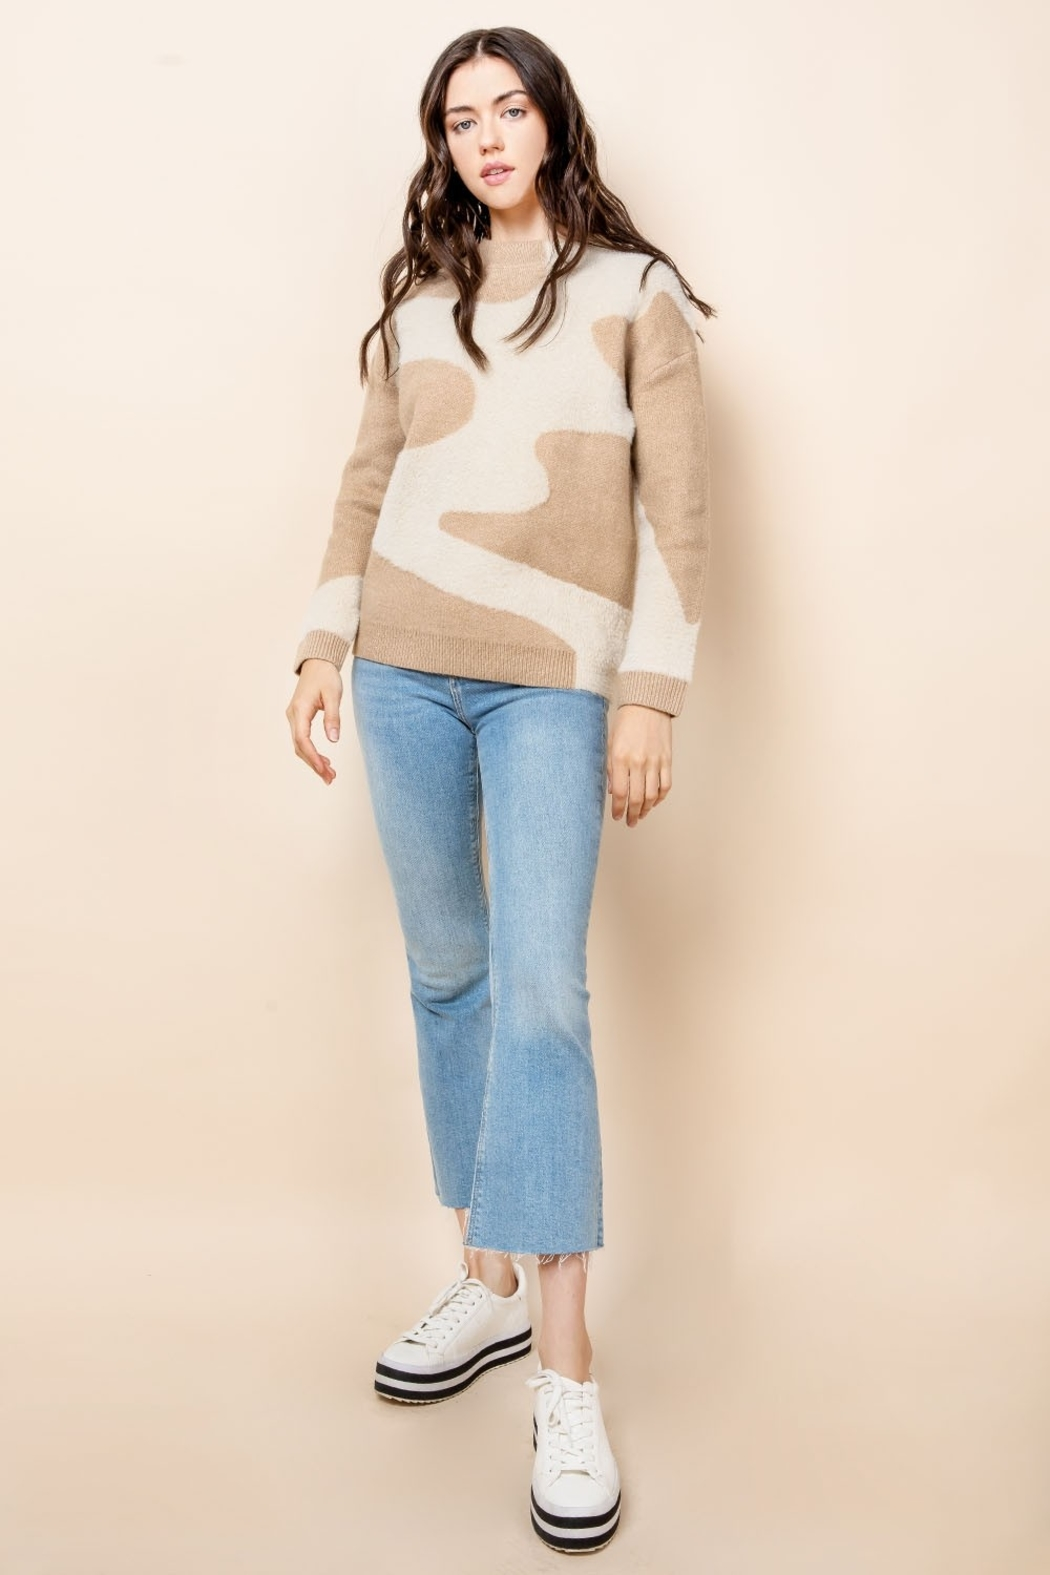 THML Clothing Mohair Patterned Sweater - Main Image